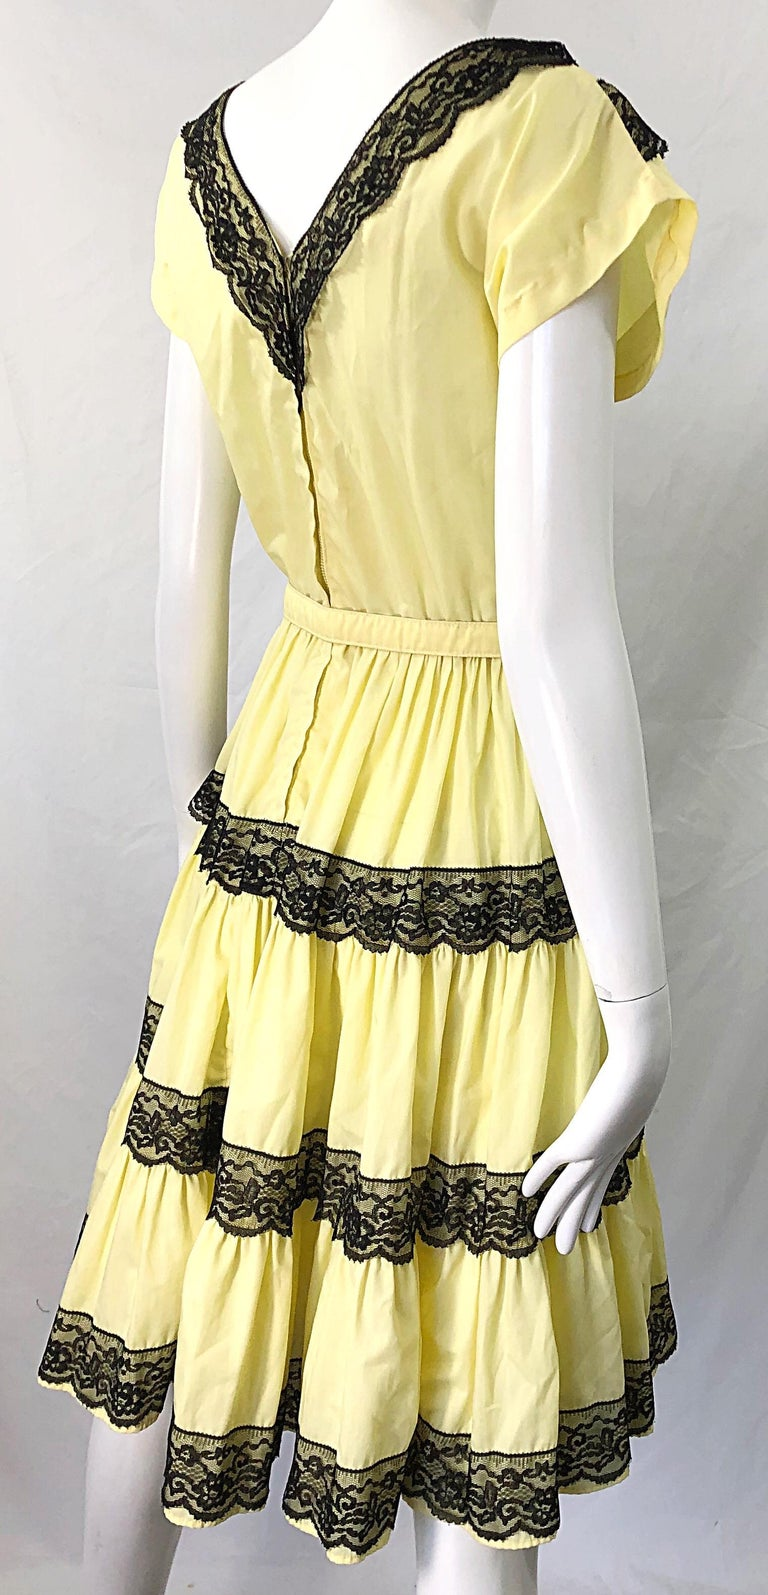 1950s Bettina of Miami Yellow + Black Cotton Lace Fit n' Flare Vintage 50s Dress For Sale 7